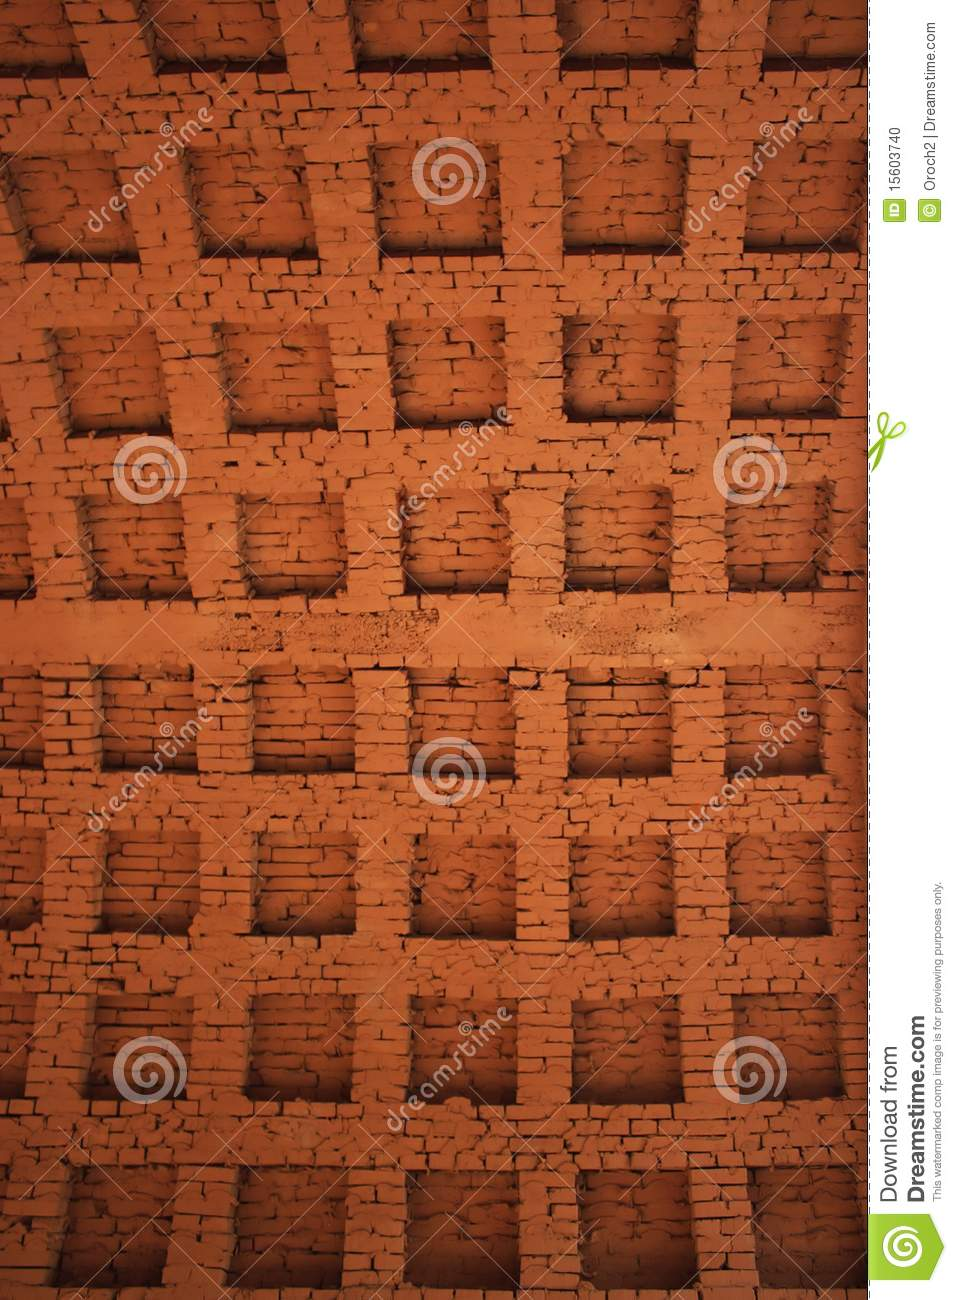 Brick Vector Picture Brick Veneers: Brick Veneer Arch Stock Photo. Image Of Tiles, Symmetry